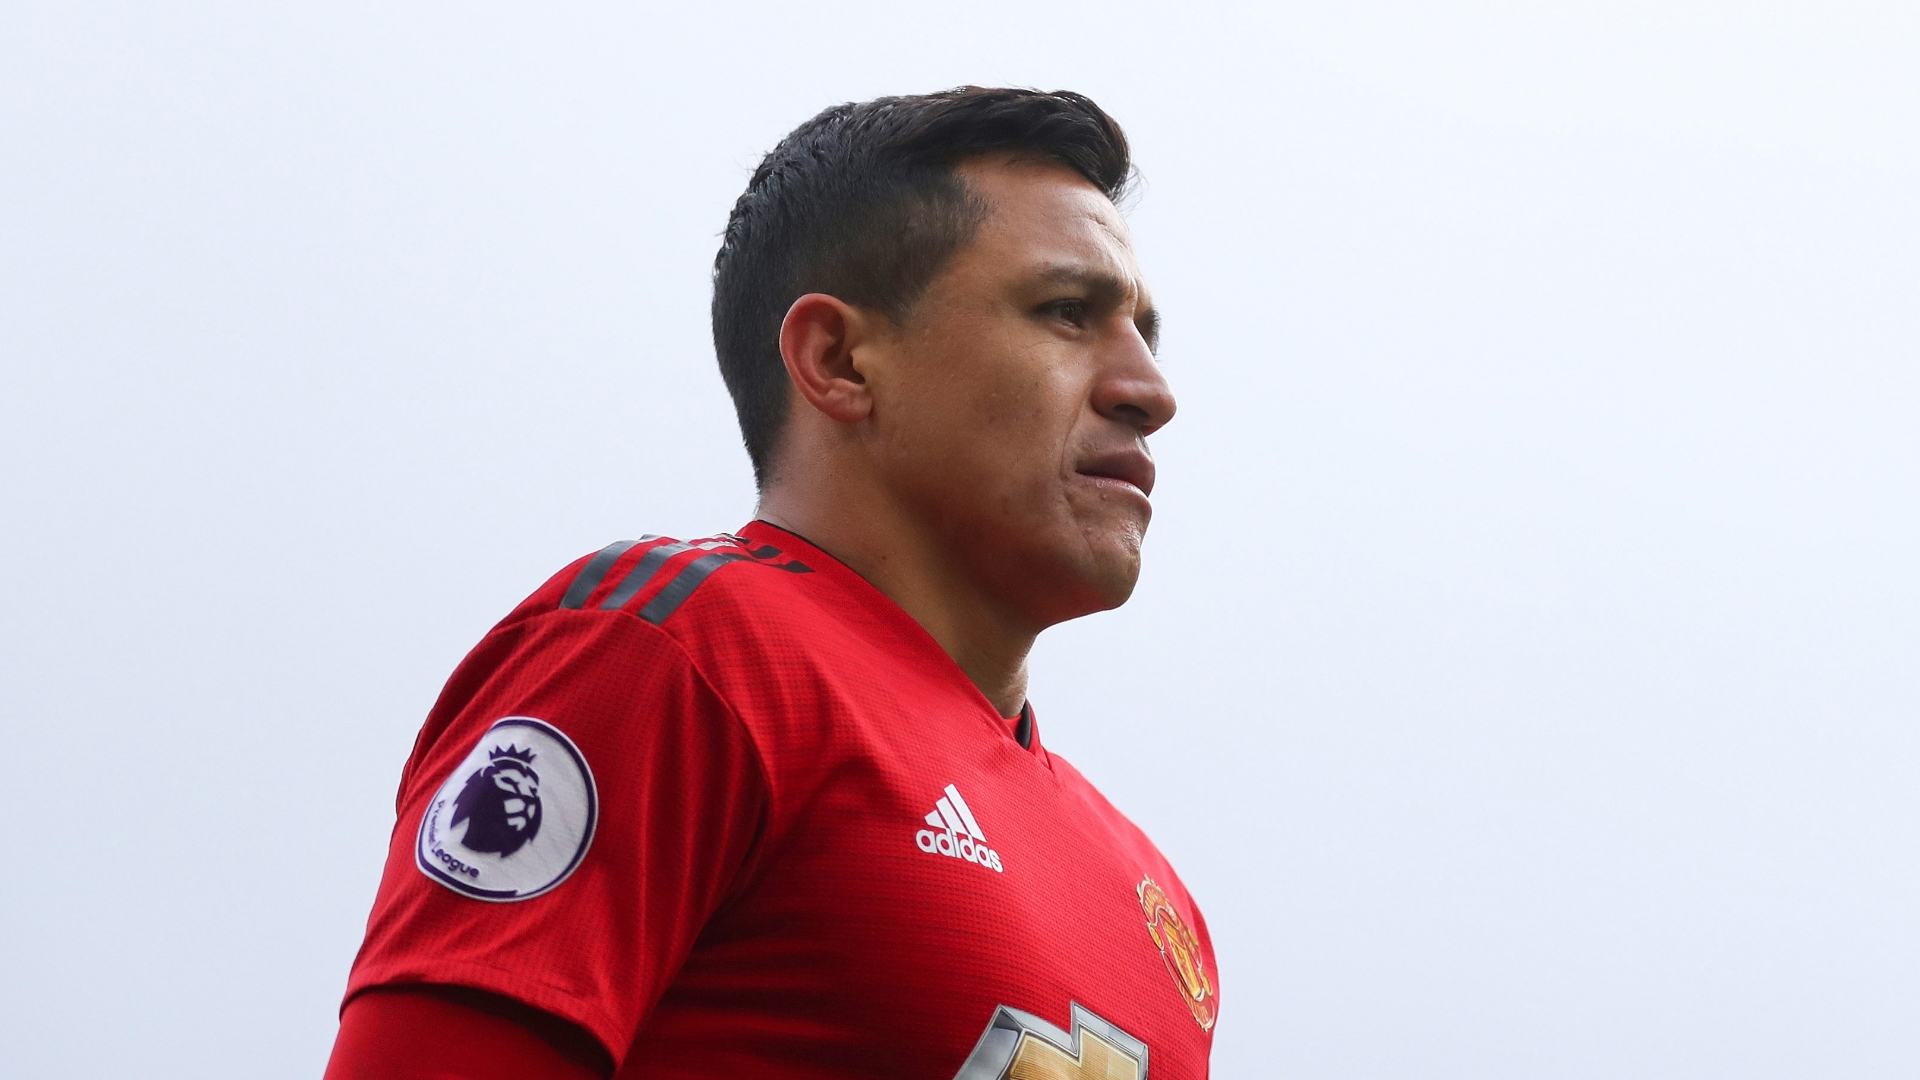 Man United's Sanchez lost confidence because of Mourinho's methods